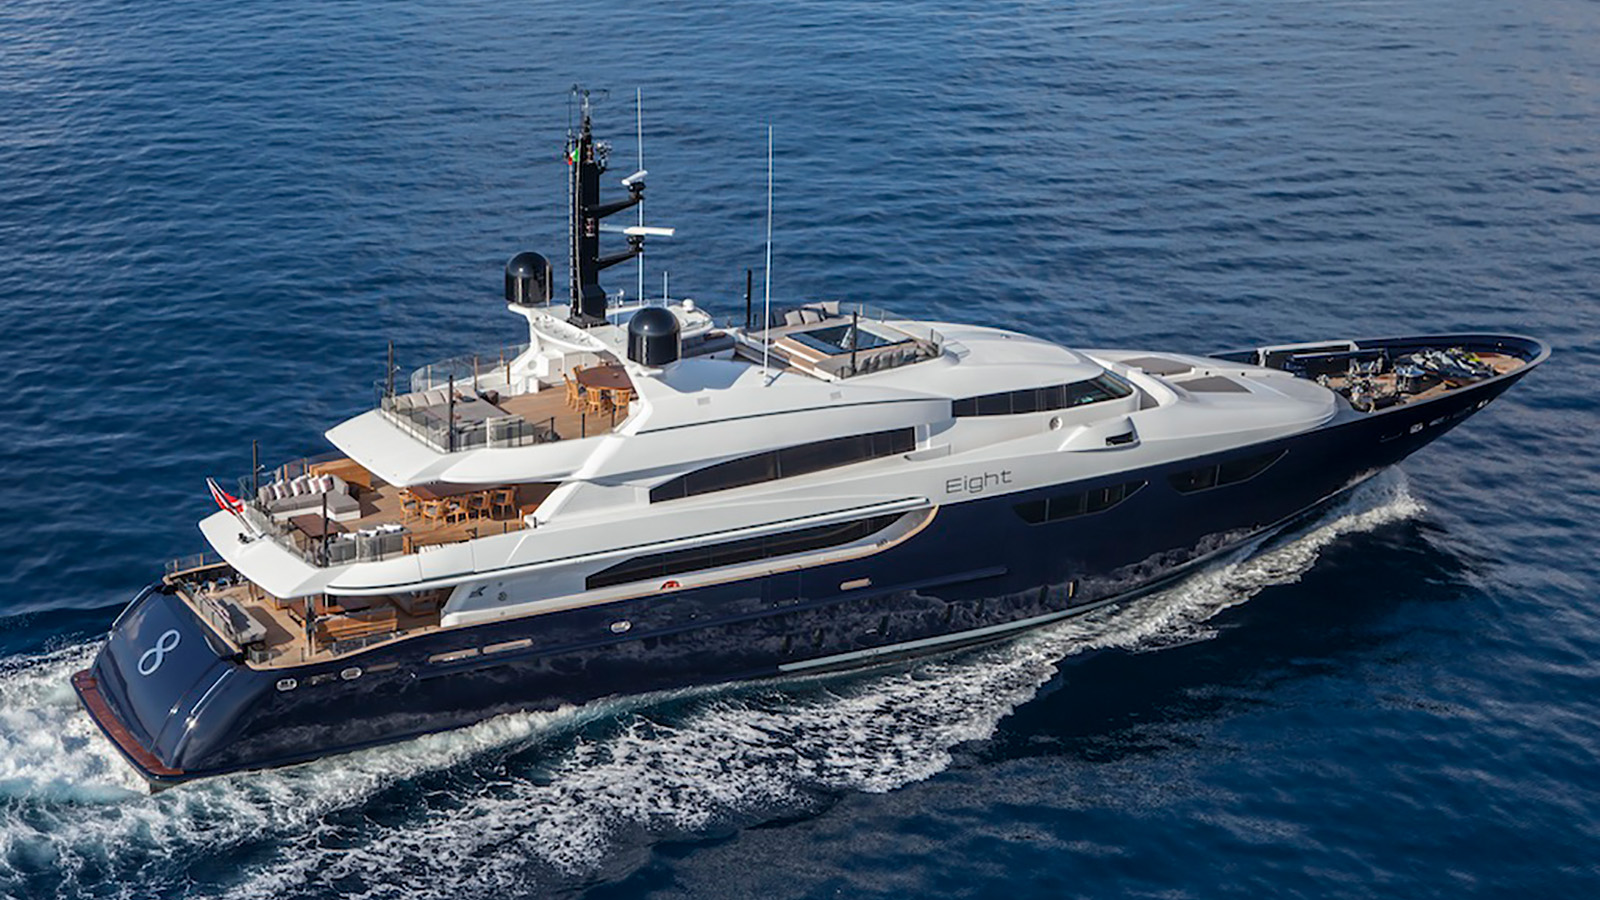 Eight Yacht for Sale - IYC